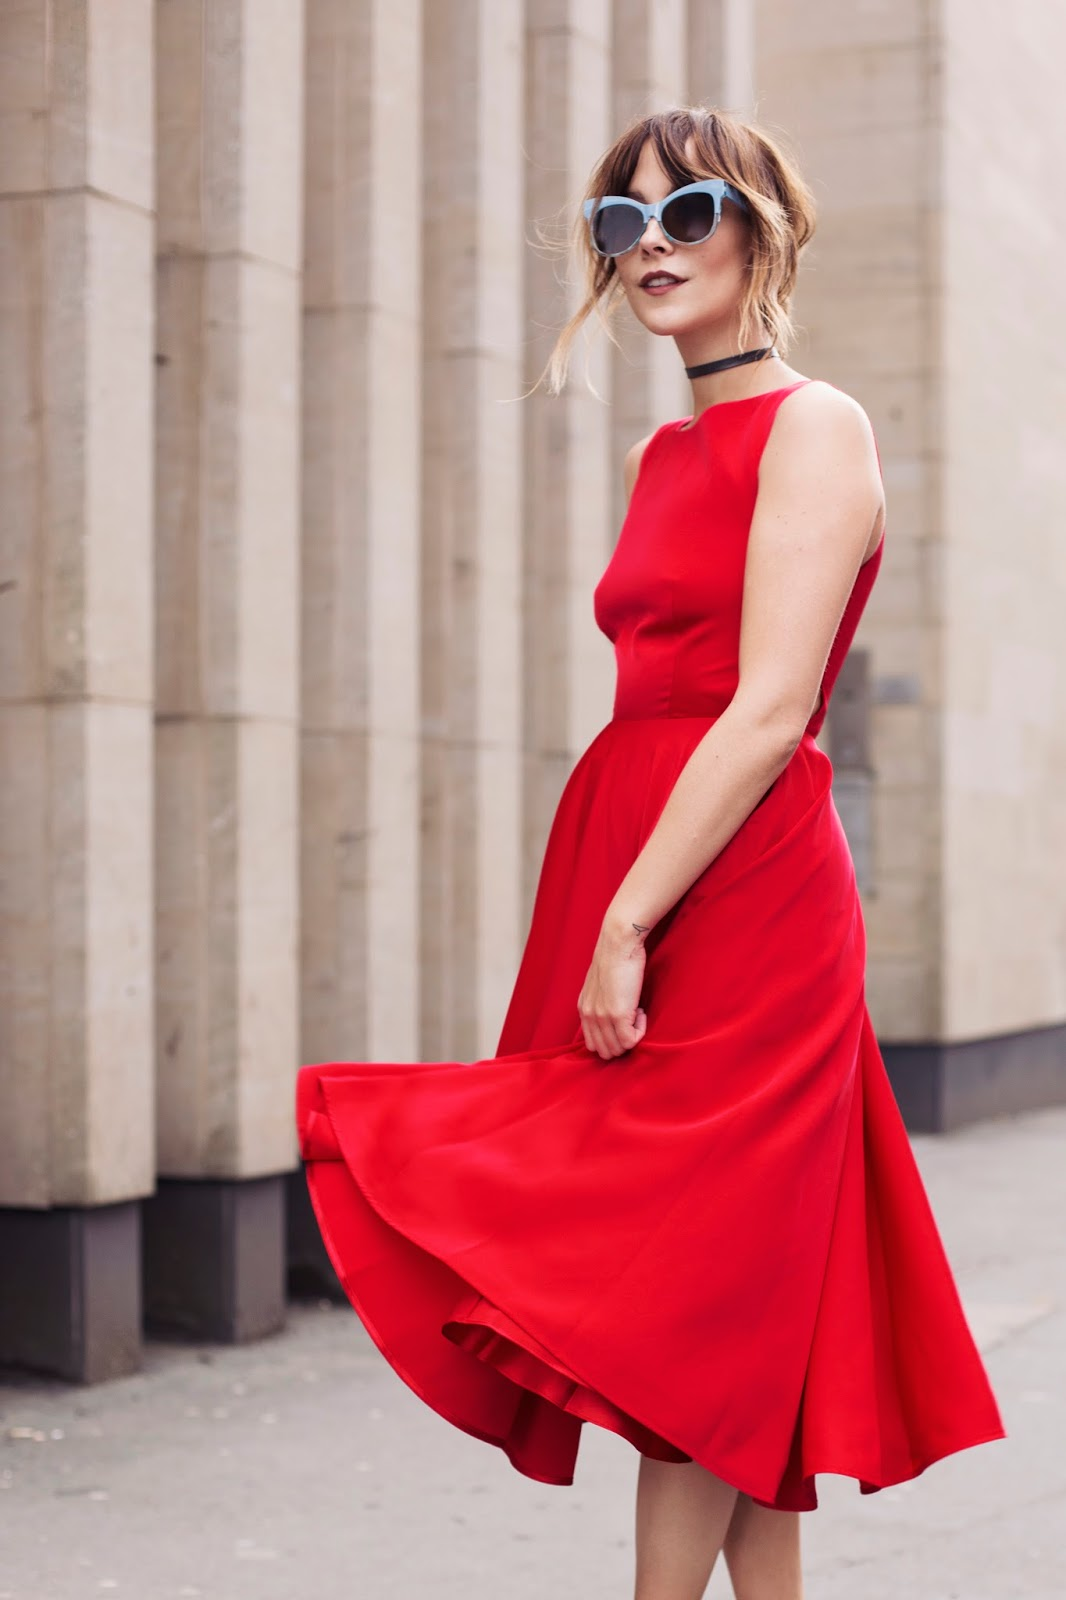 Wedding guest full red satin dress from Selfridges by Ted Baker